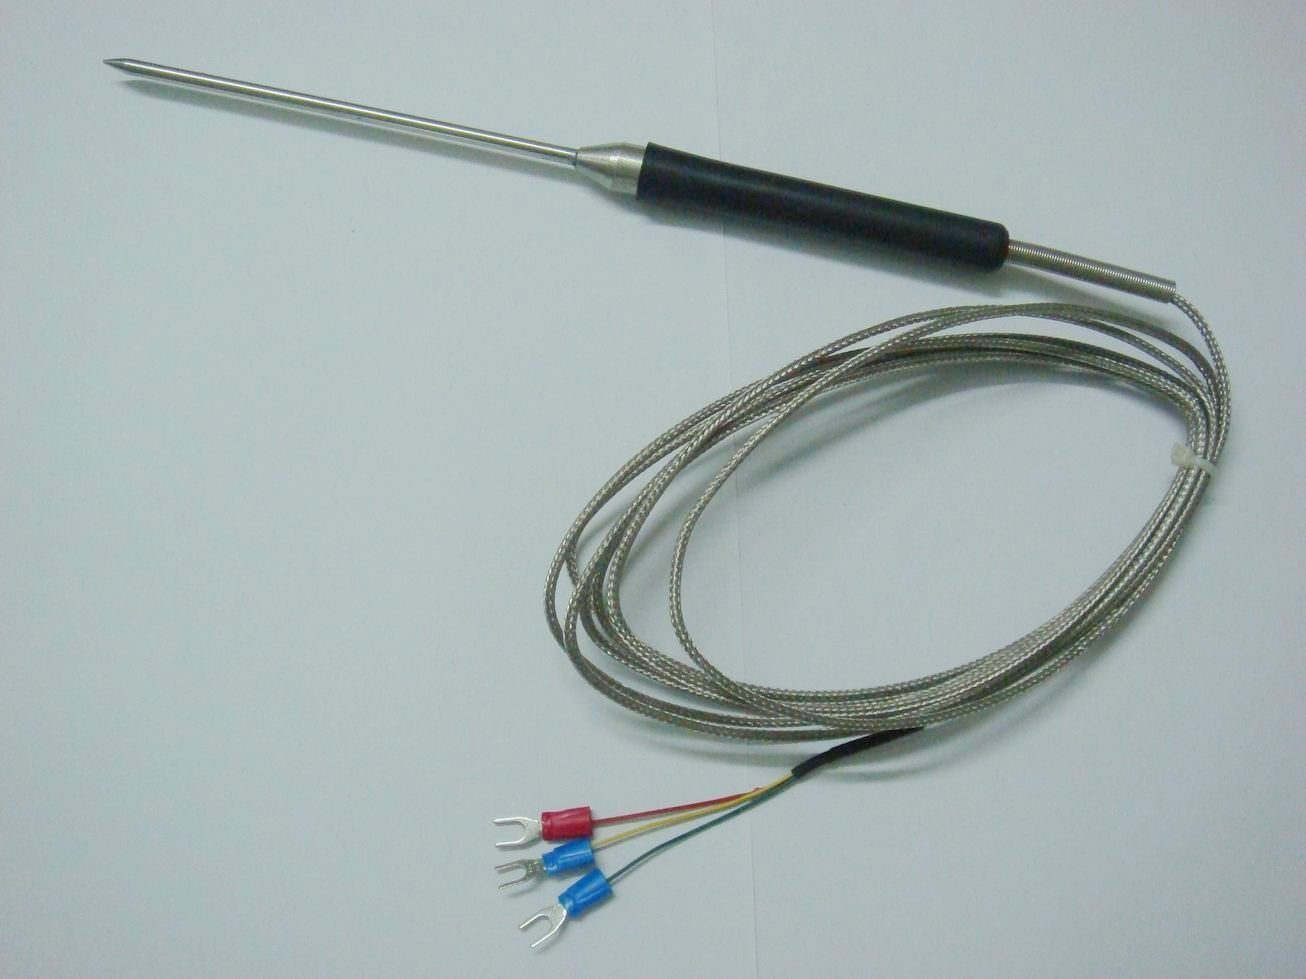 Phenomenal Rtd Sensor Pt 100 Manufacturer Supplier In Gujarat India Wiring 101 Capemaxxcnl